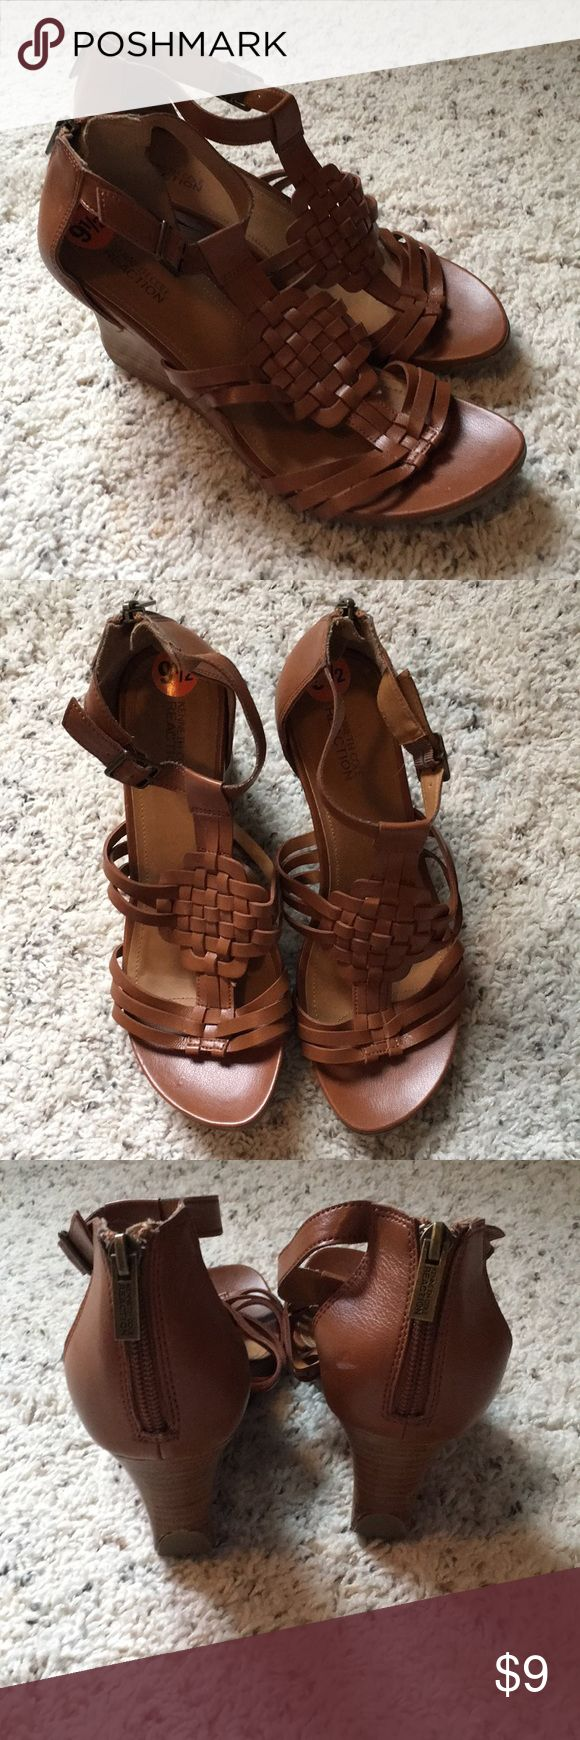 Kenneth Cole reaction sandals Brownish tan wedge sandals. Zip up the back and have buckle for adjustment. Gently used in good condition Kenneth Cole Reaction Shoes Sandals